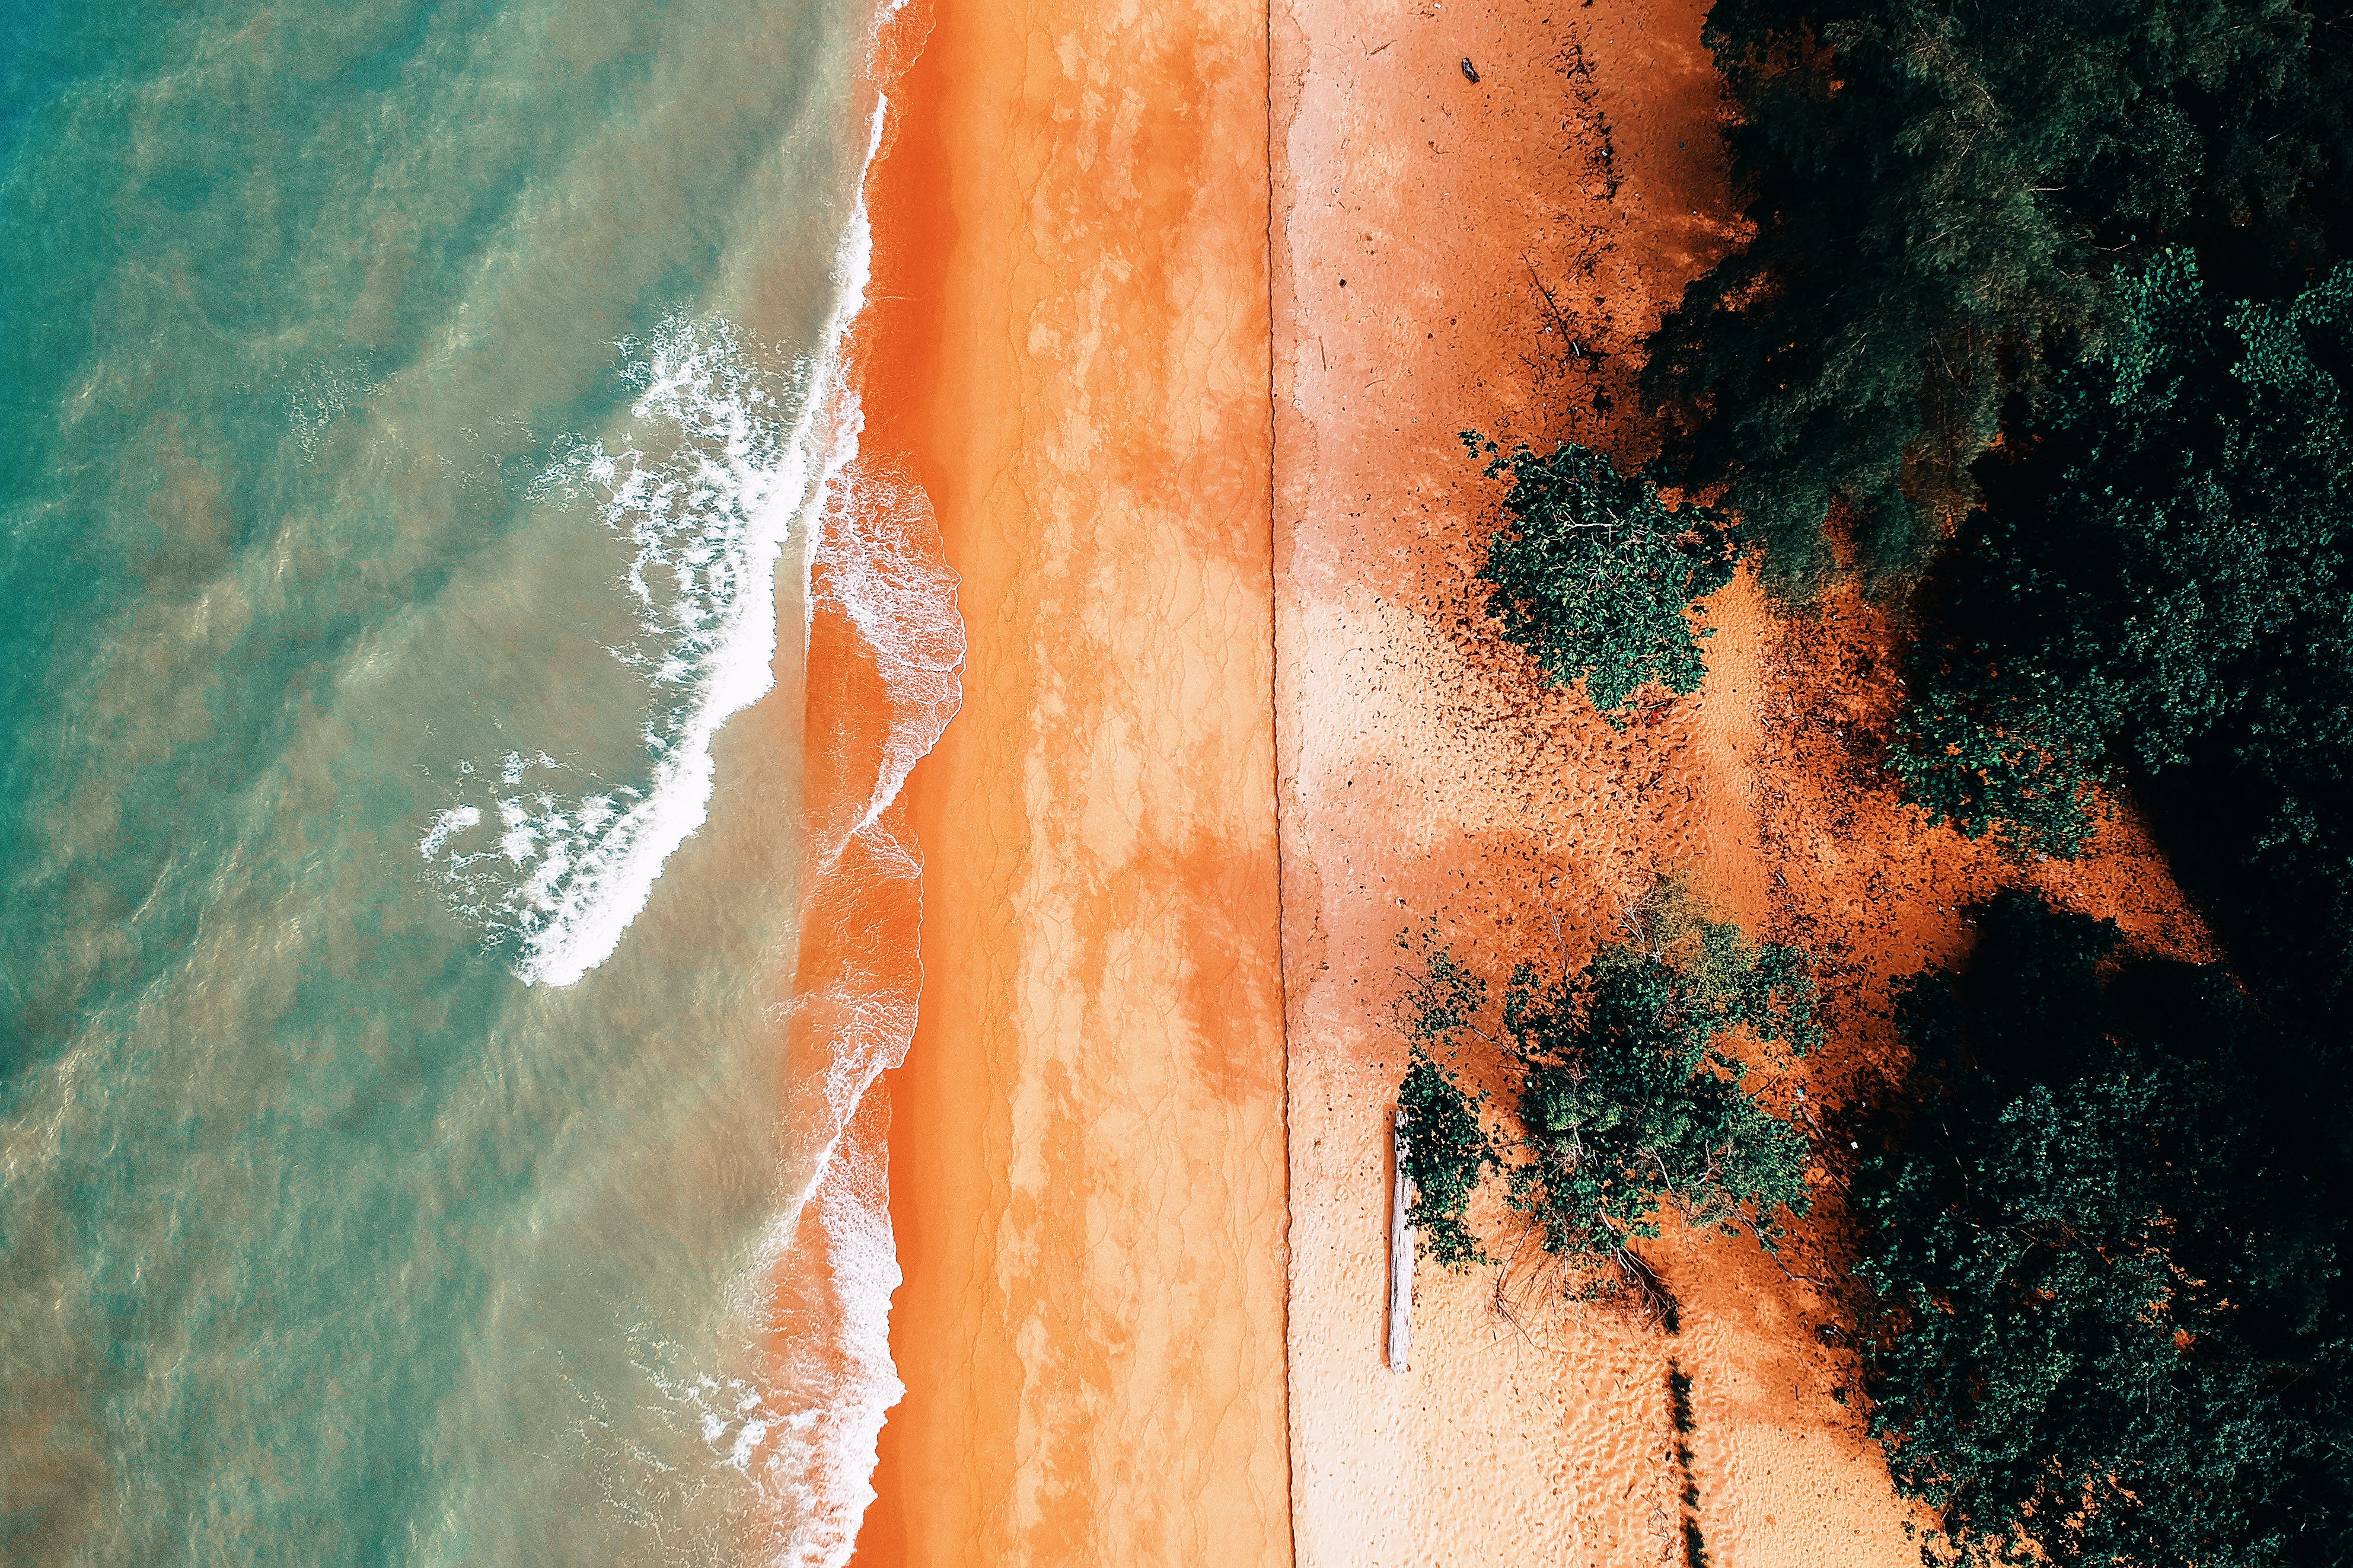 Aerial Photography of Body Ocean Near Trees